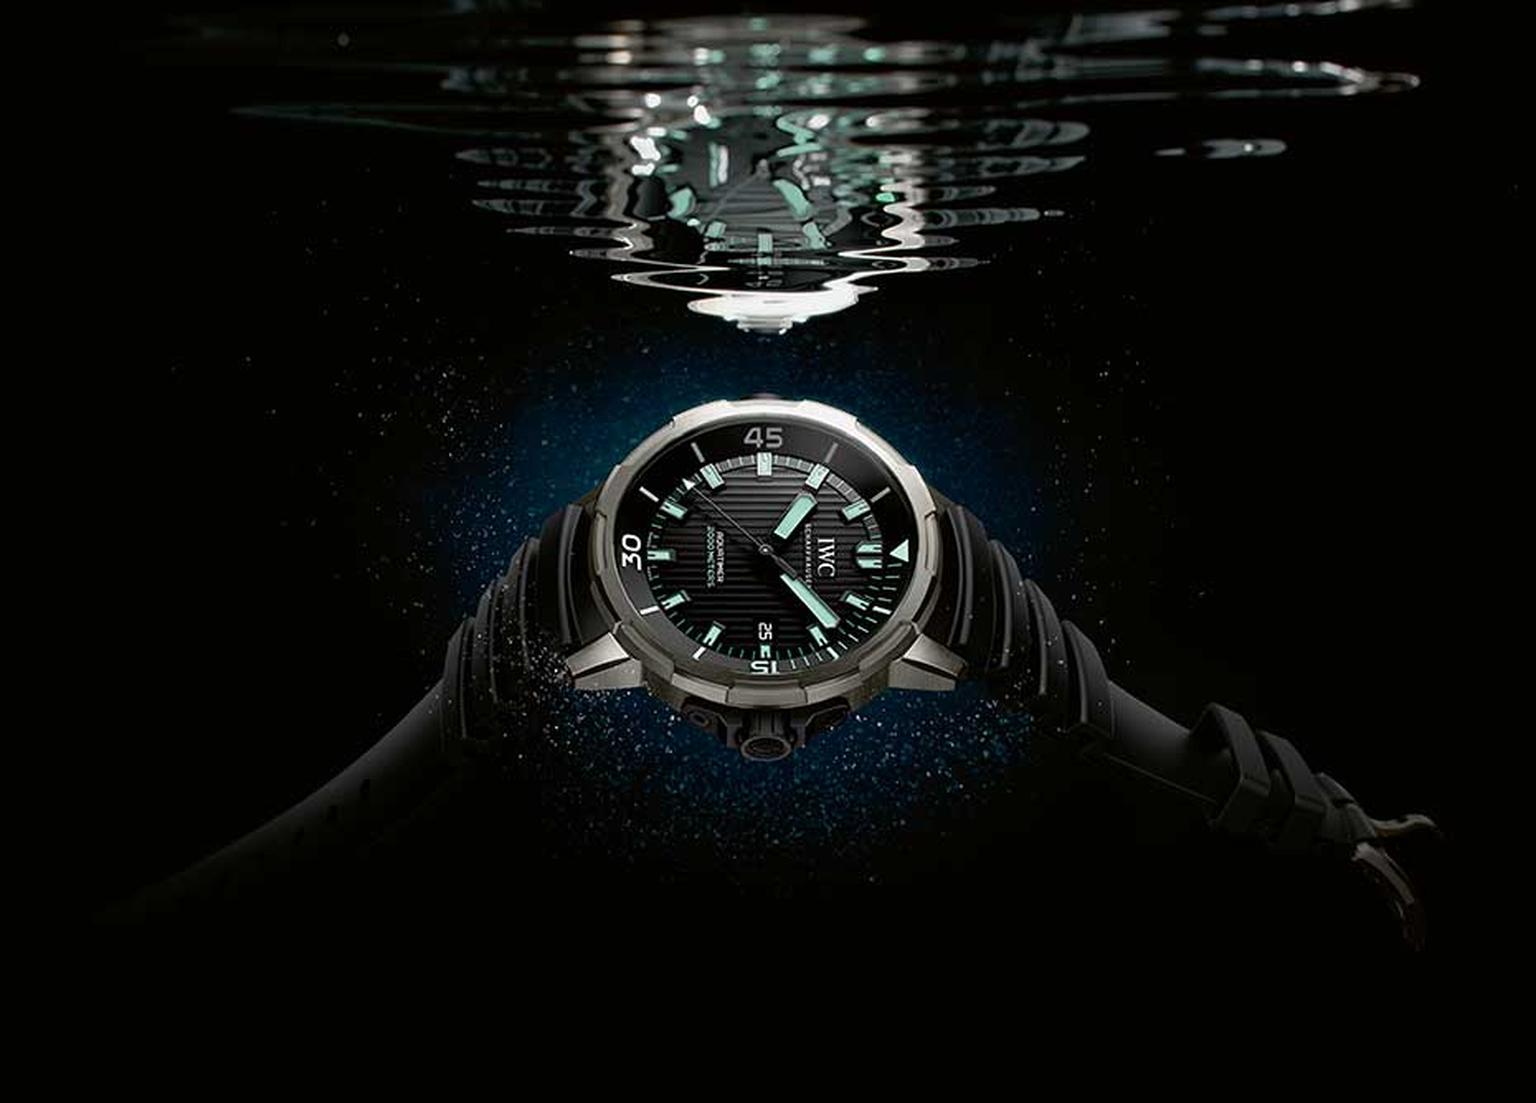 IWC's new Aquatimer 2000 can be used 2,000m beneath the sea - a watch that appeals to not only professional divers but also ambitious amateur ocean explorers.